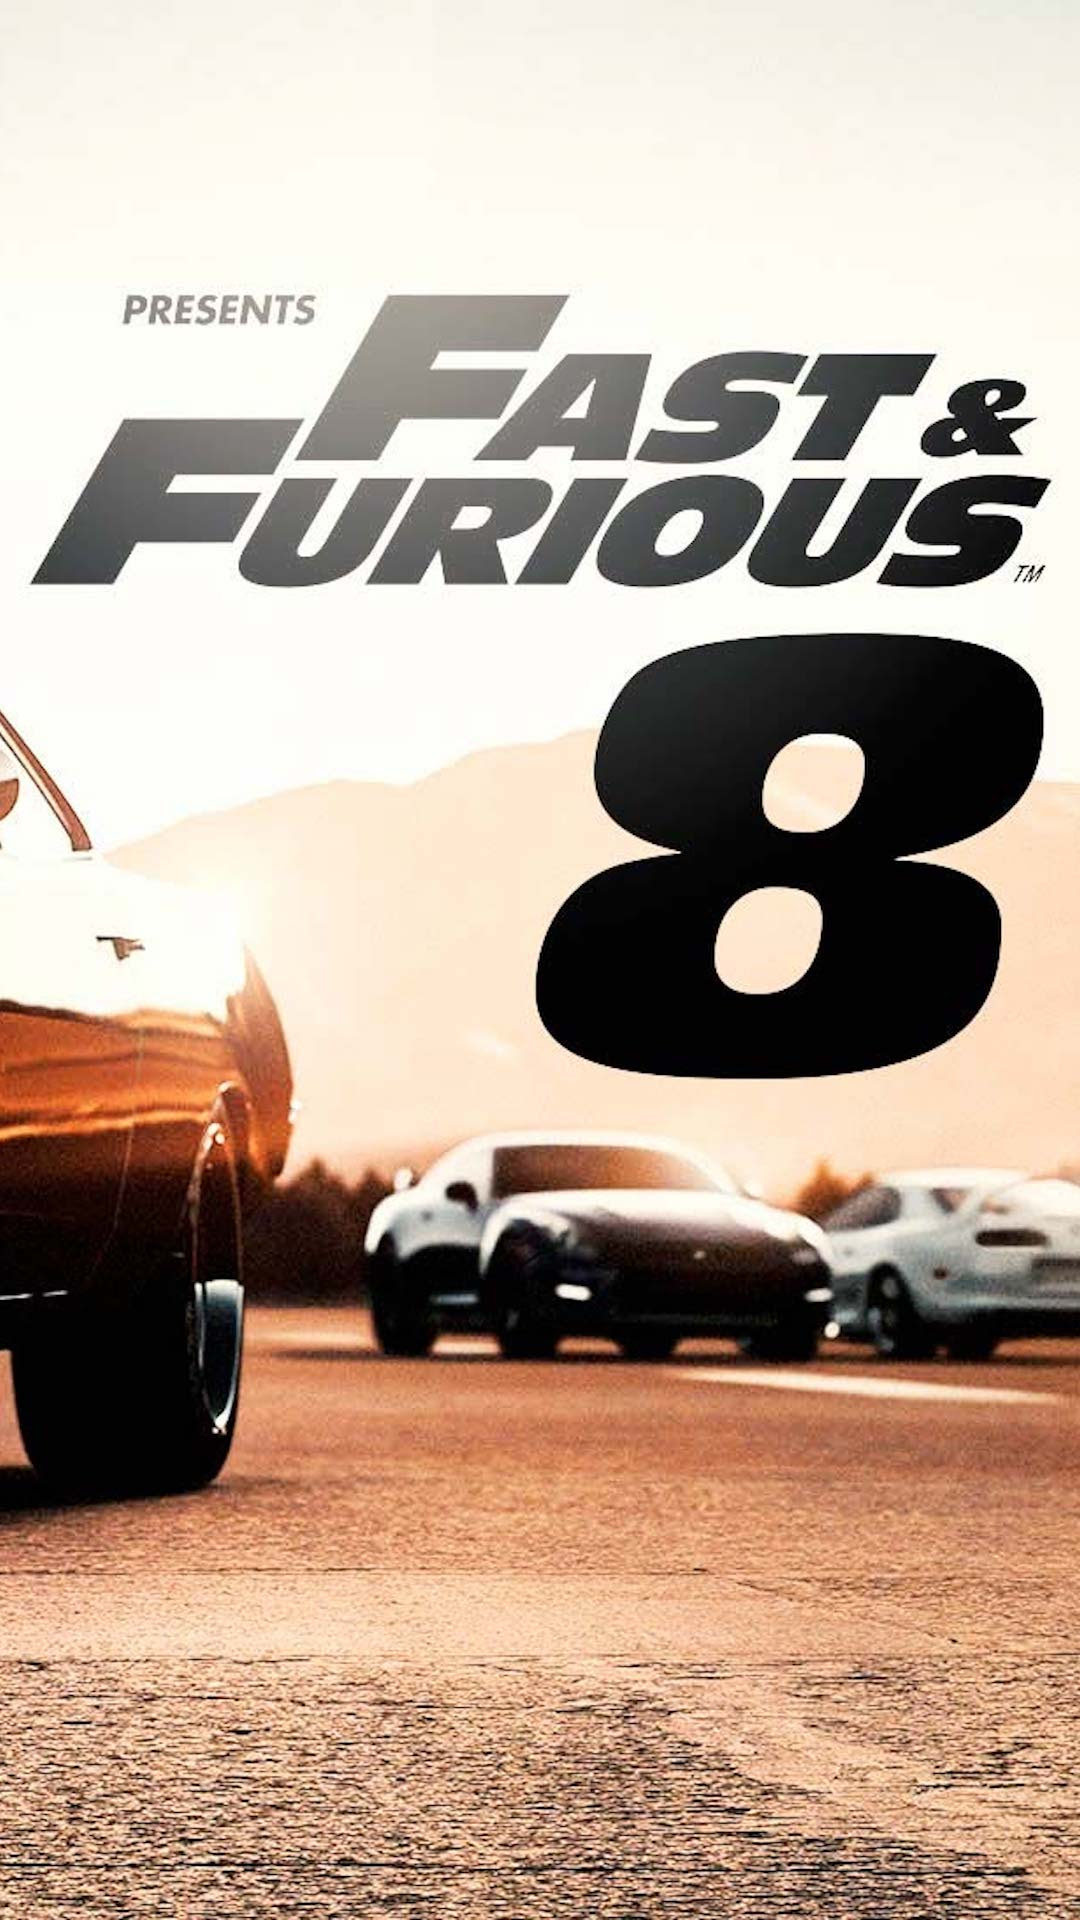 The Fast And The Furious 8 Wallpapers - Wallpaper Cave